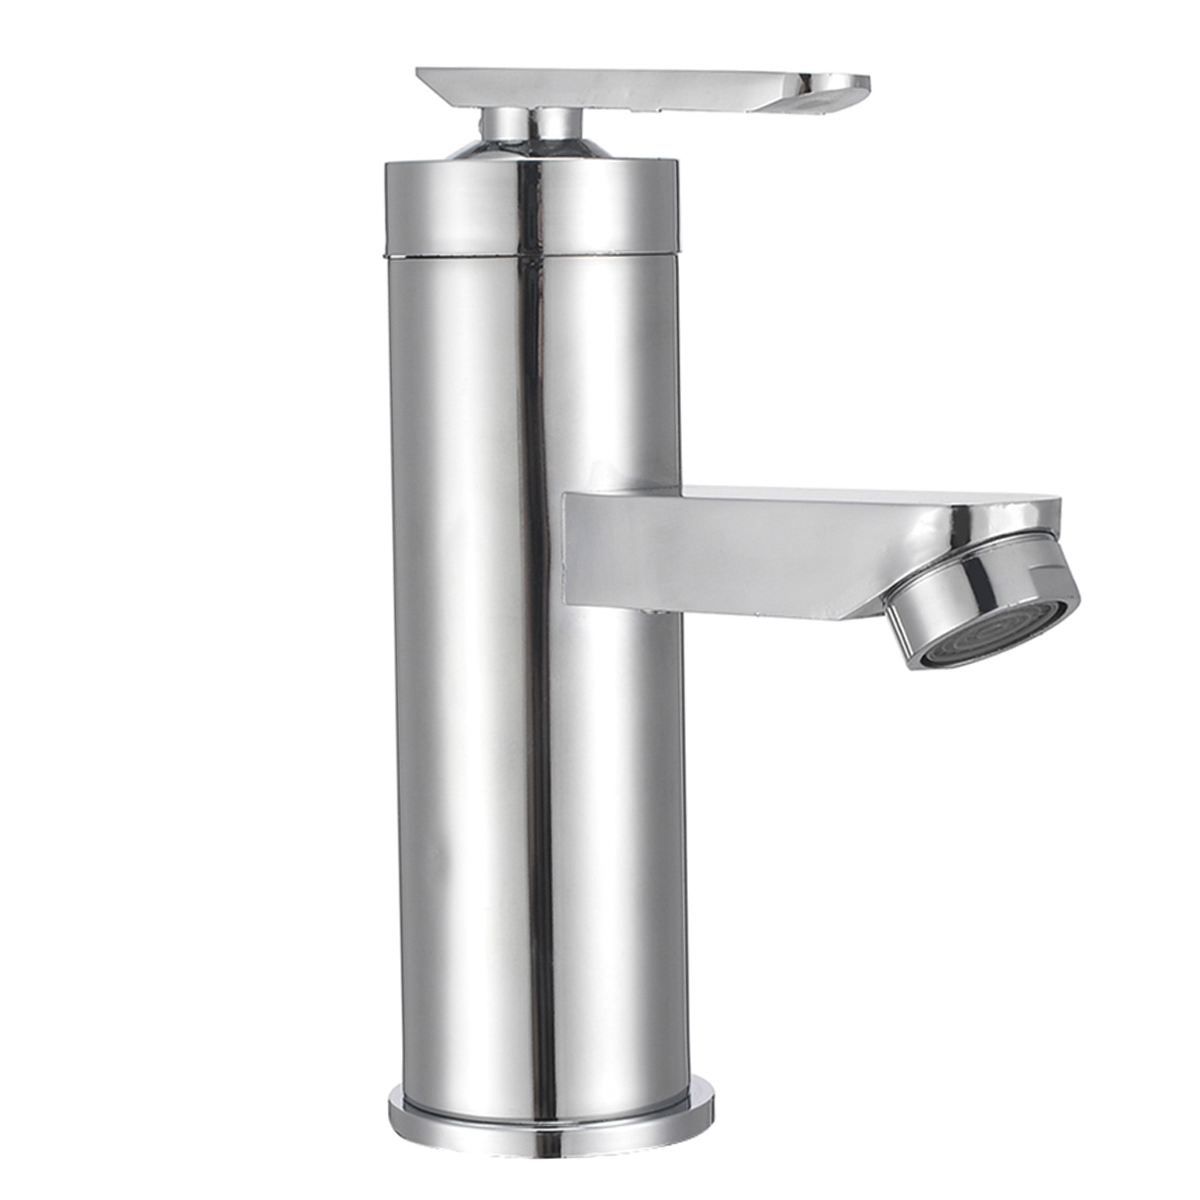 Mayitr Waterfall Bathroom Basin Faucet Chrome Single Handle Sink Cold Hot Mixer Tap For Kitchen Bathroom Hardware|Basin Faucets| - AliExpress